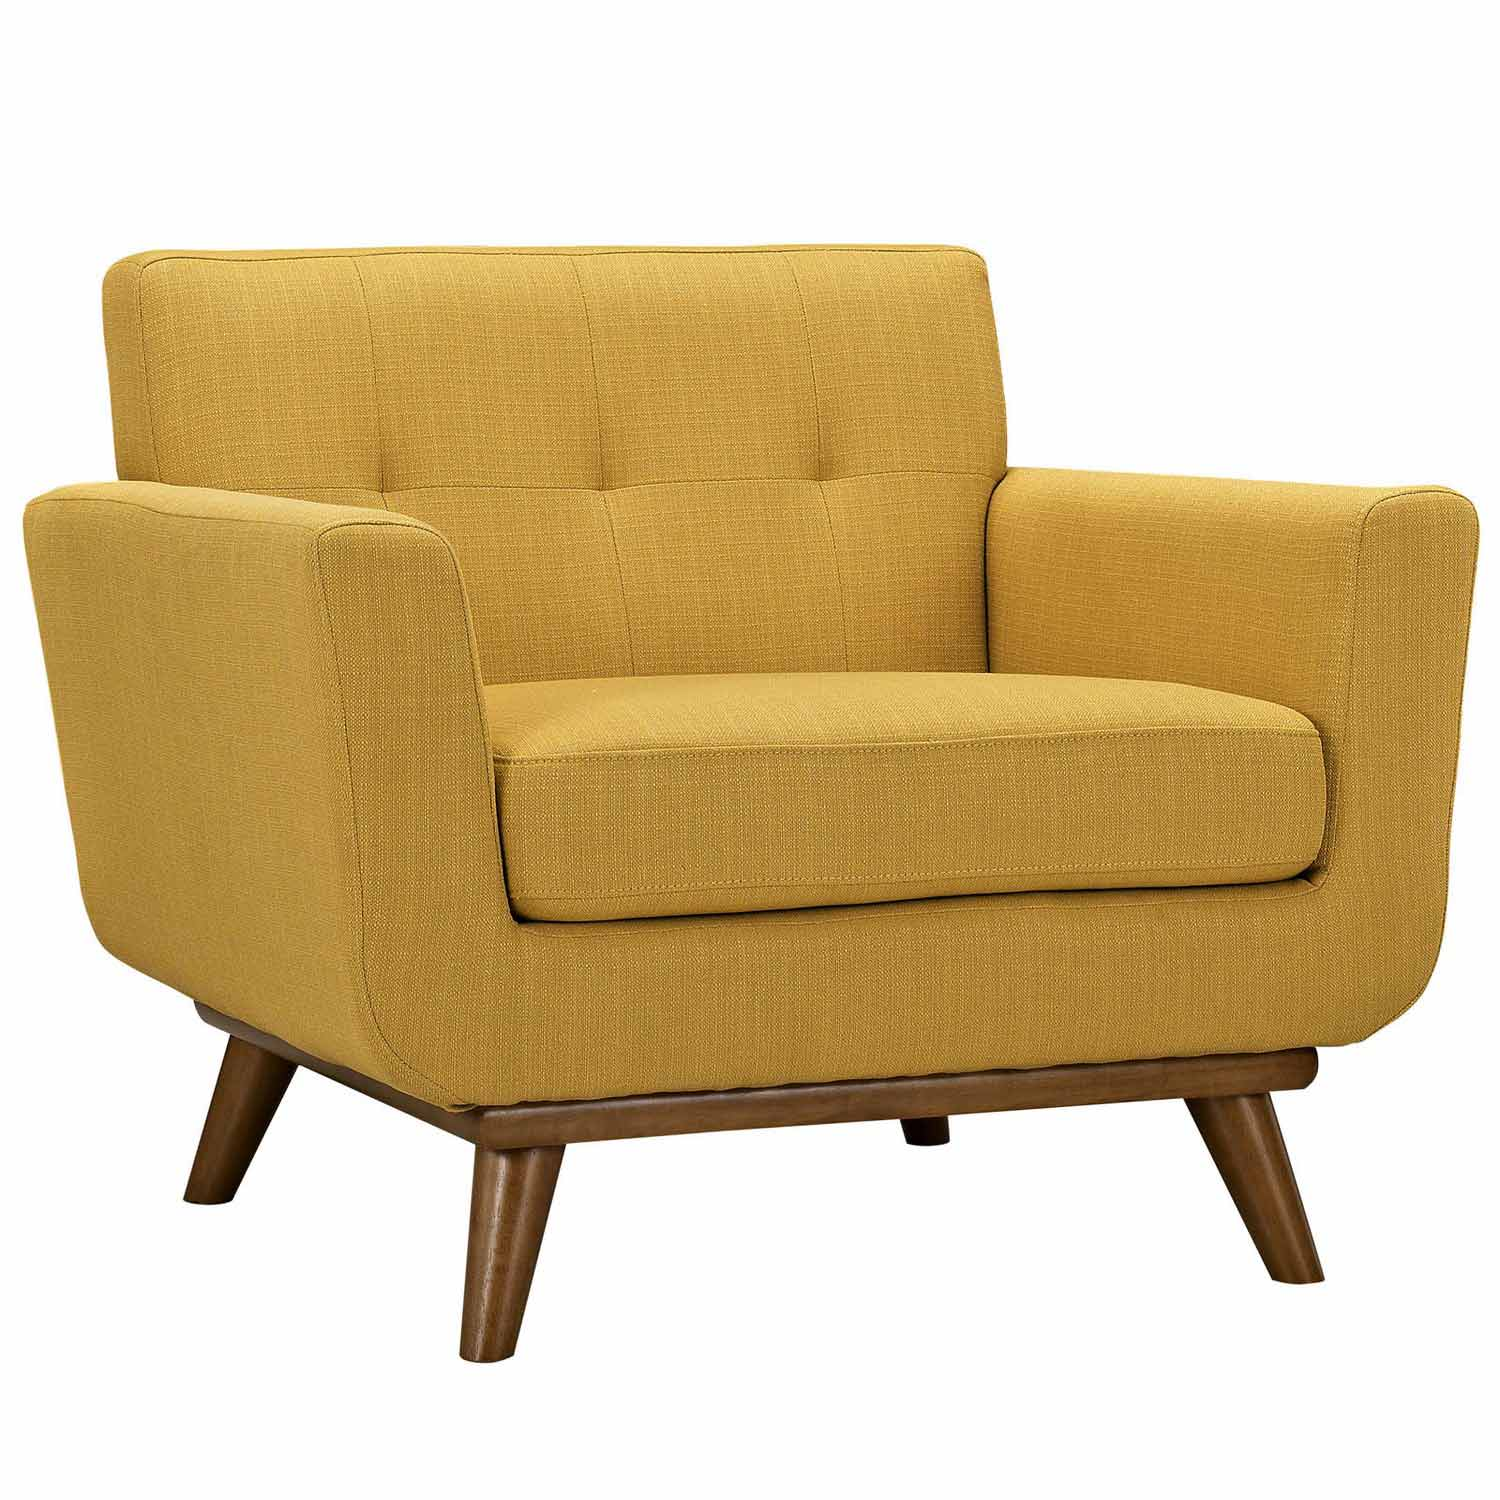 Modway Engage Armchairs and Sofa Set of 3 - Citrus